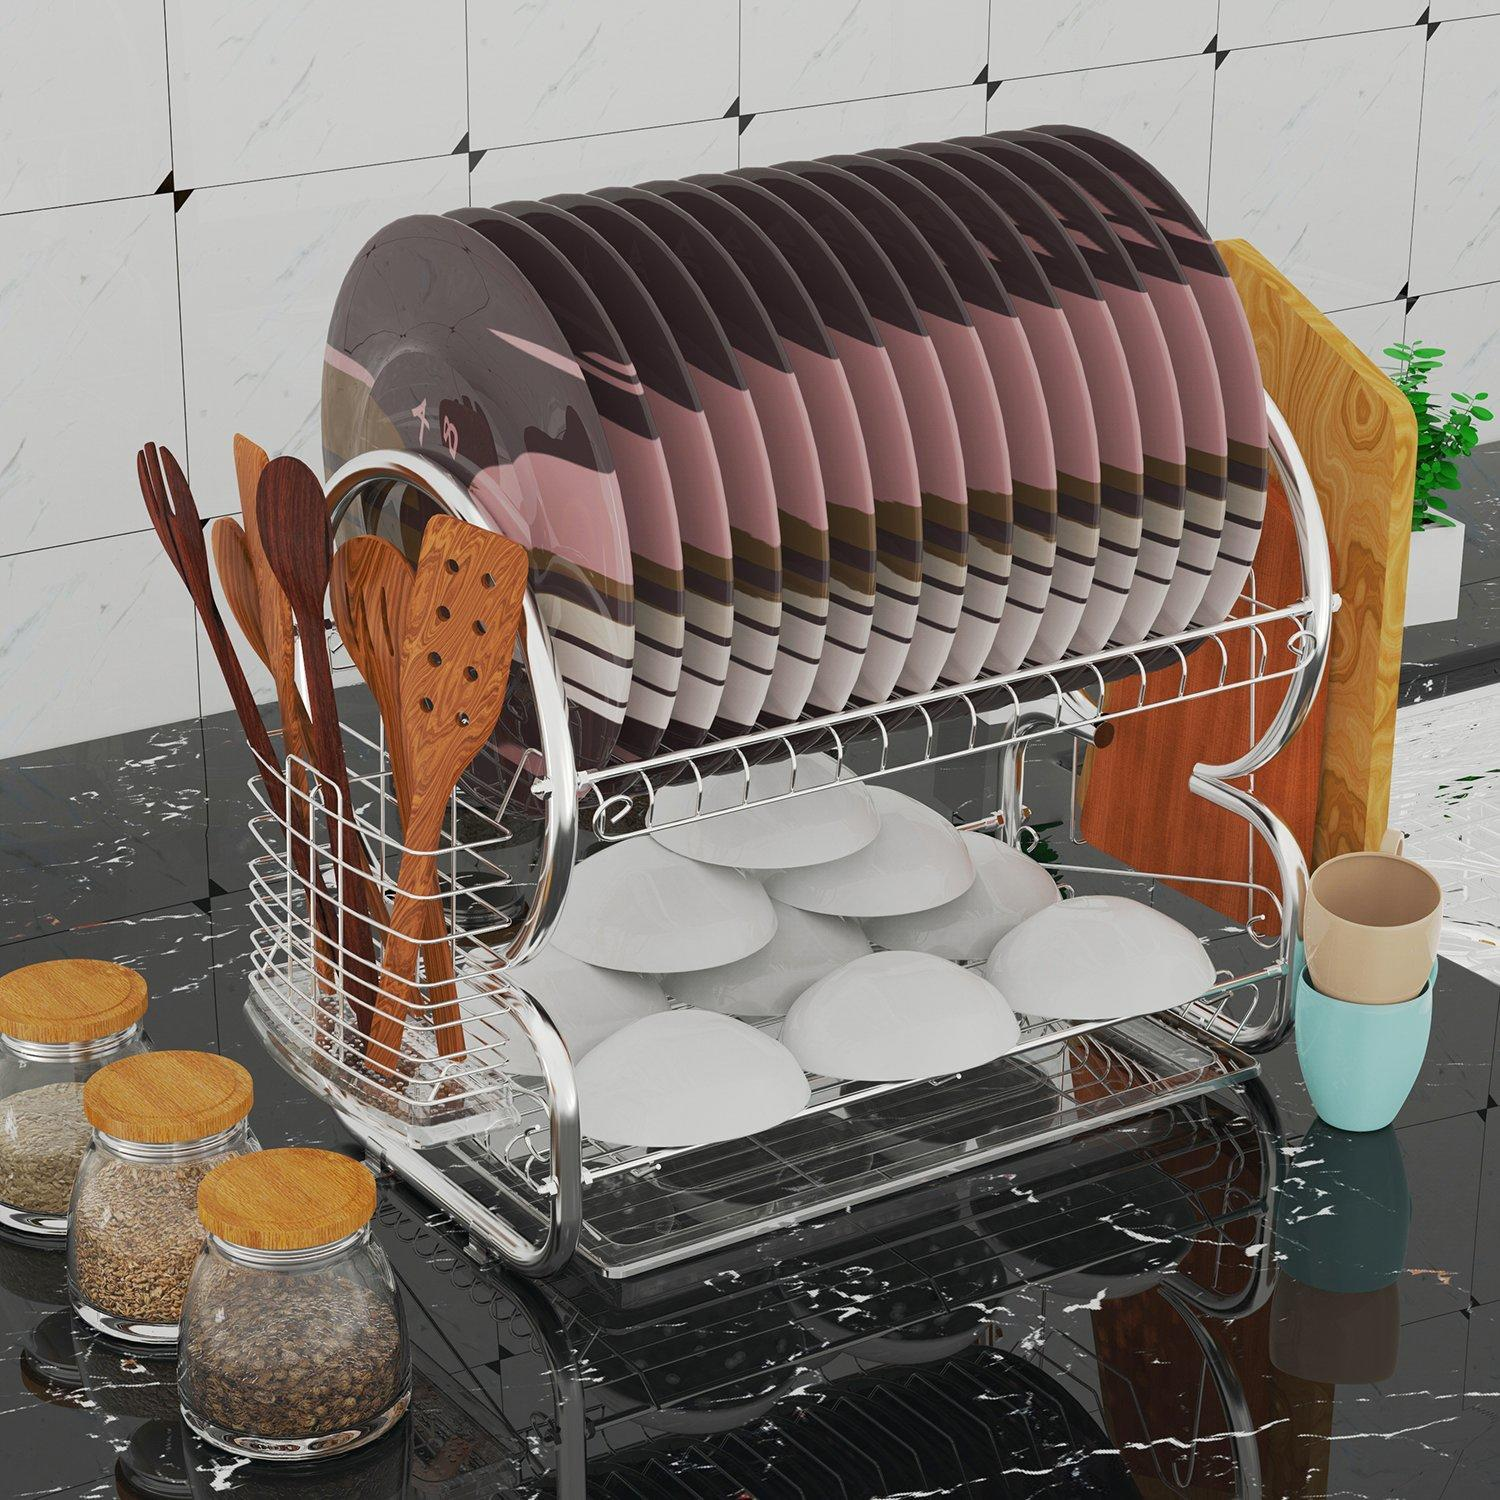 Dish Drying Rack, Veckle 2 Tier Dish Drainer Easy Install Non-Slip Dish Rack C hrome Plated Dish Dryer with Removable Drain Board, Utensil Holder